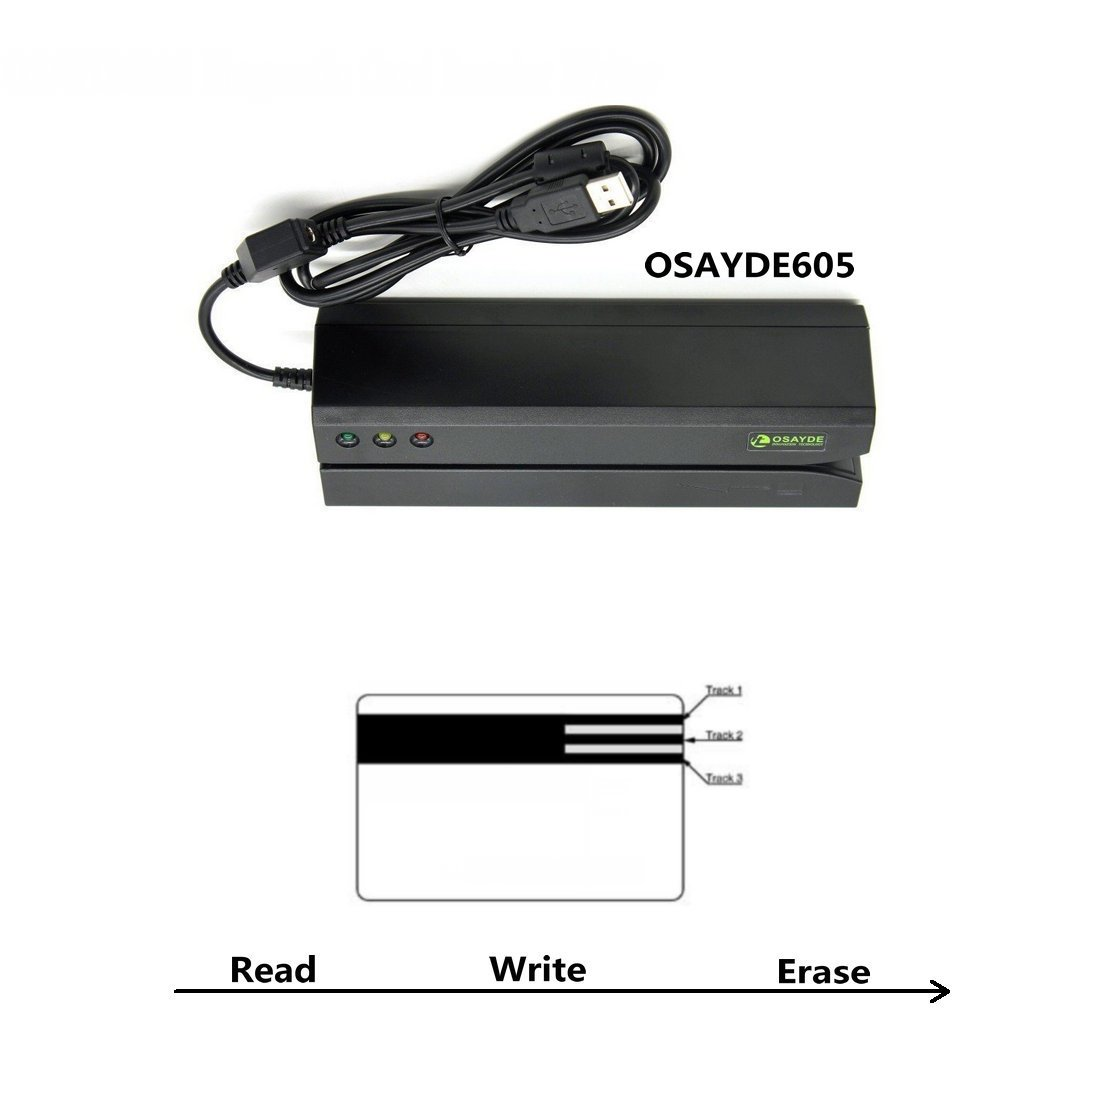 Osayde OSAYDE605 Magnetic Card Reader, 3 Tracks Writer Encoder Scanner, Free Software to Install, Easily Use Credit Card, Debit Card, Gift Card All Magnetic Swipe Card